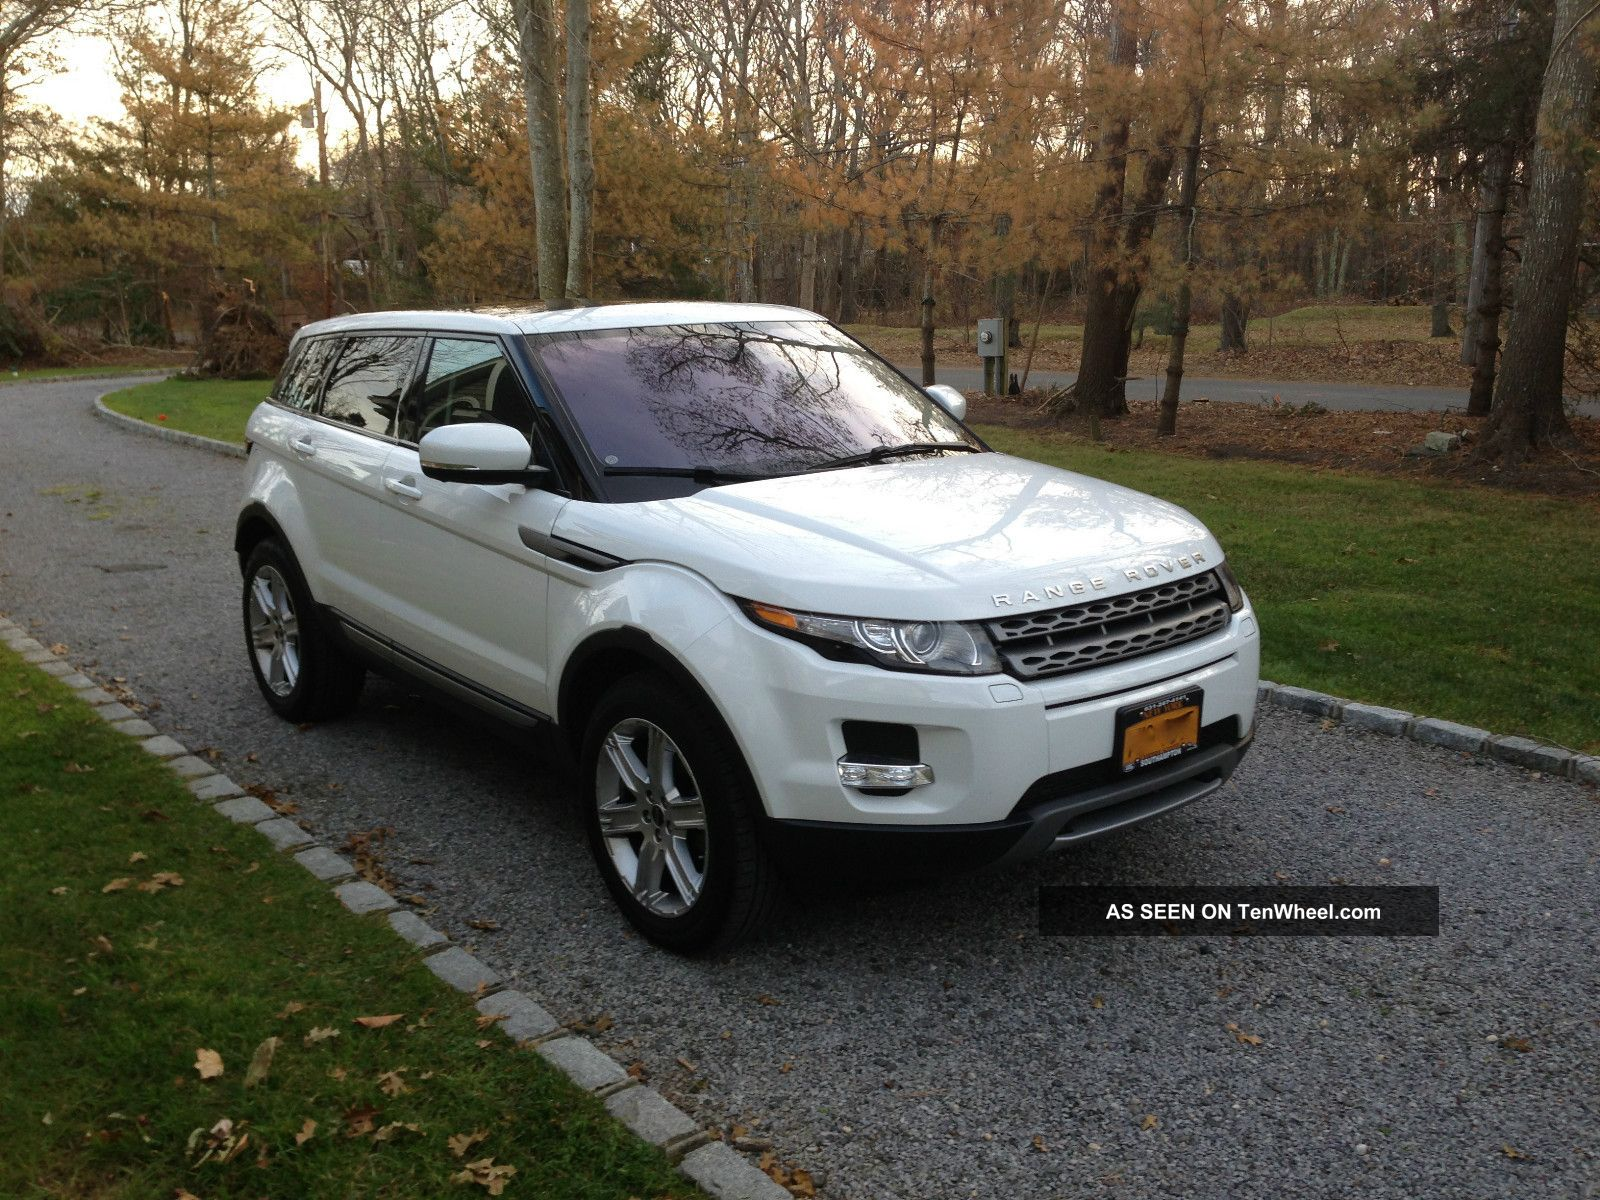 2012 Range Rover Evoque Evoque photo